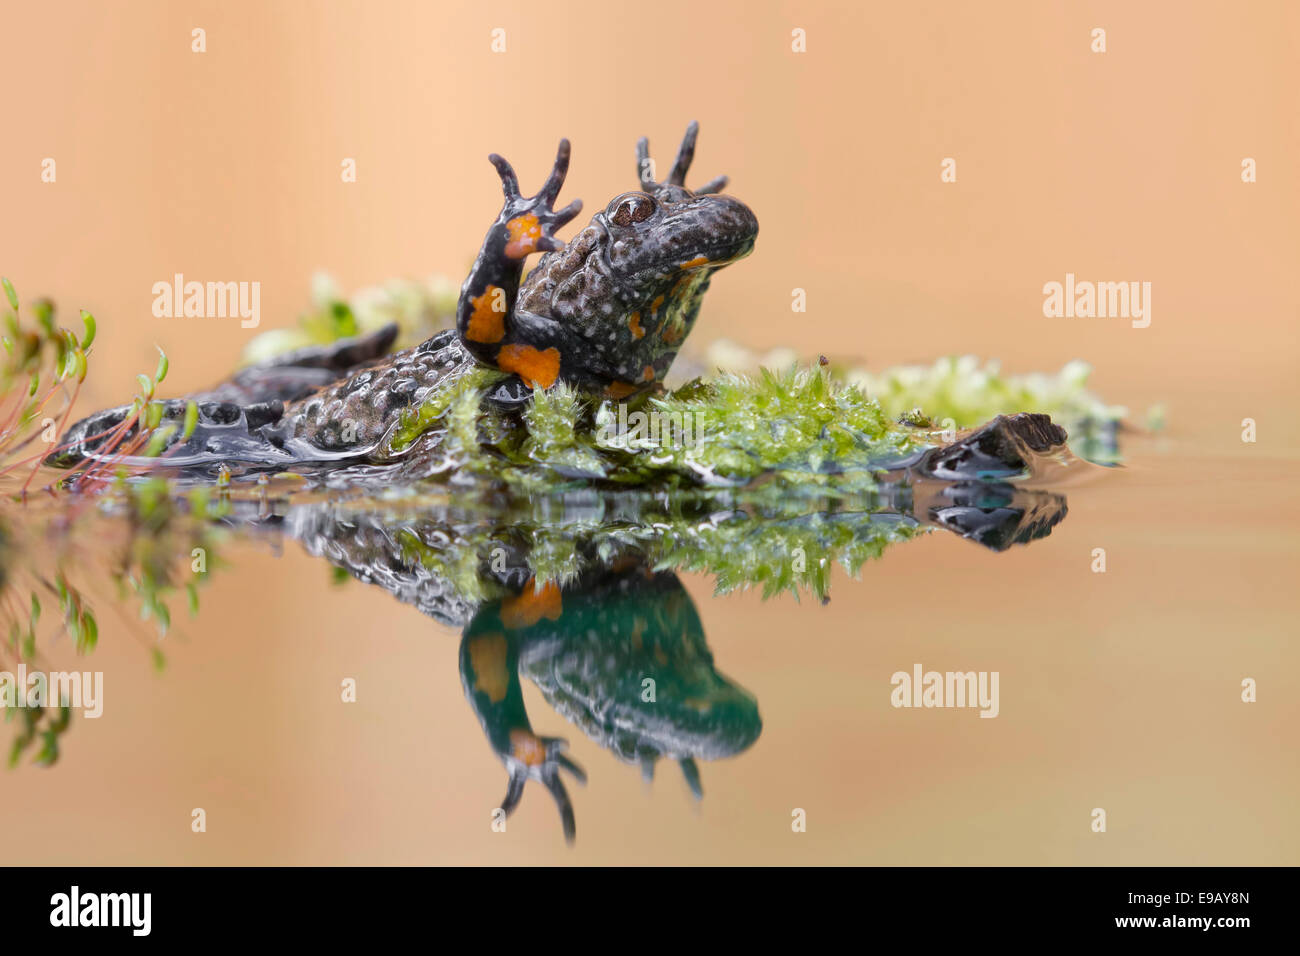 Fire-bellied Toad or Firebelly Toad (Bombina bombina), Unkenreflex defensive posture, reflection, seepage water, - Stock Image